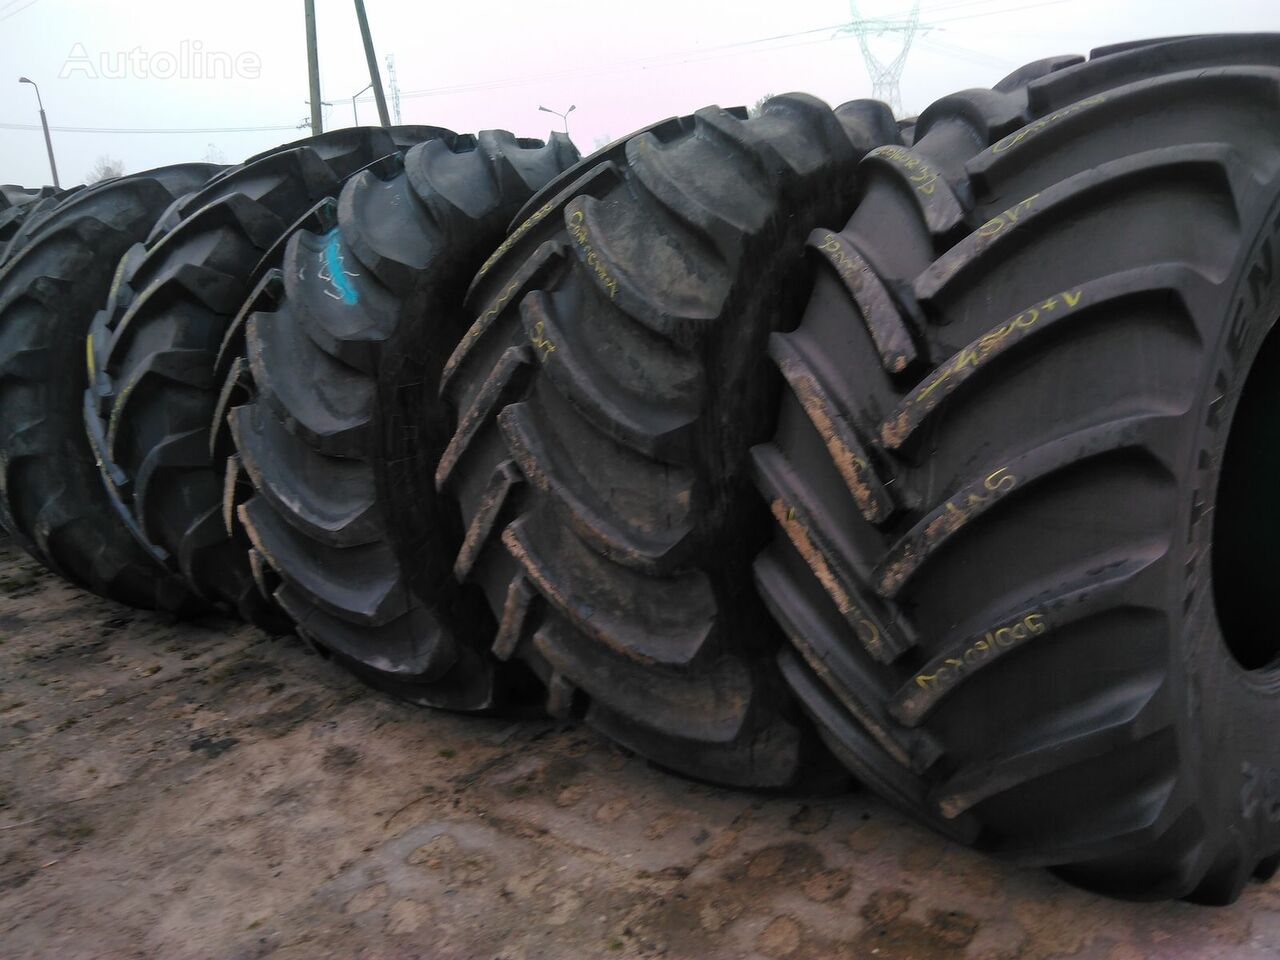 nákladní pneumatiky Goodyear Used Agricultural tires of all sizes